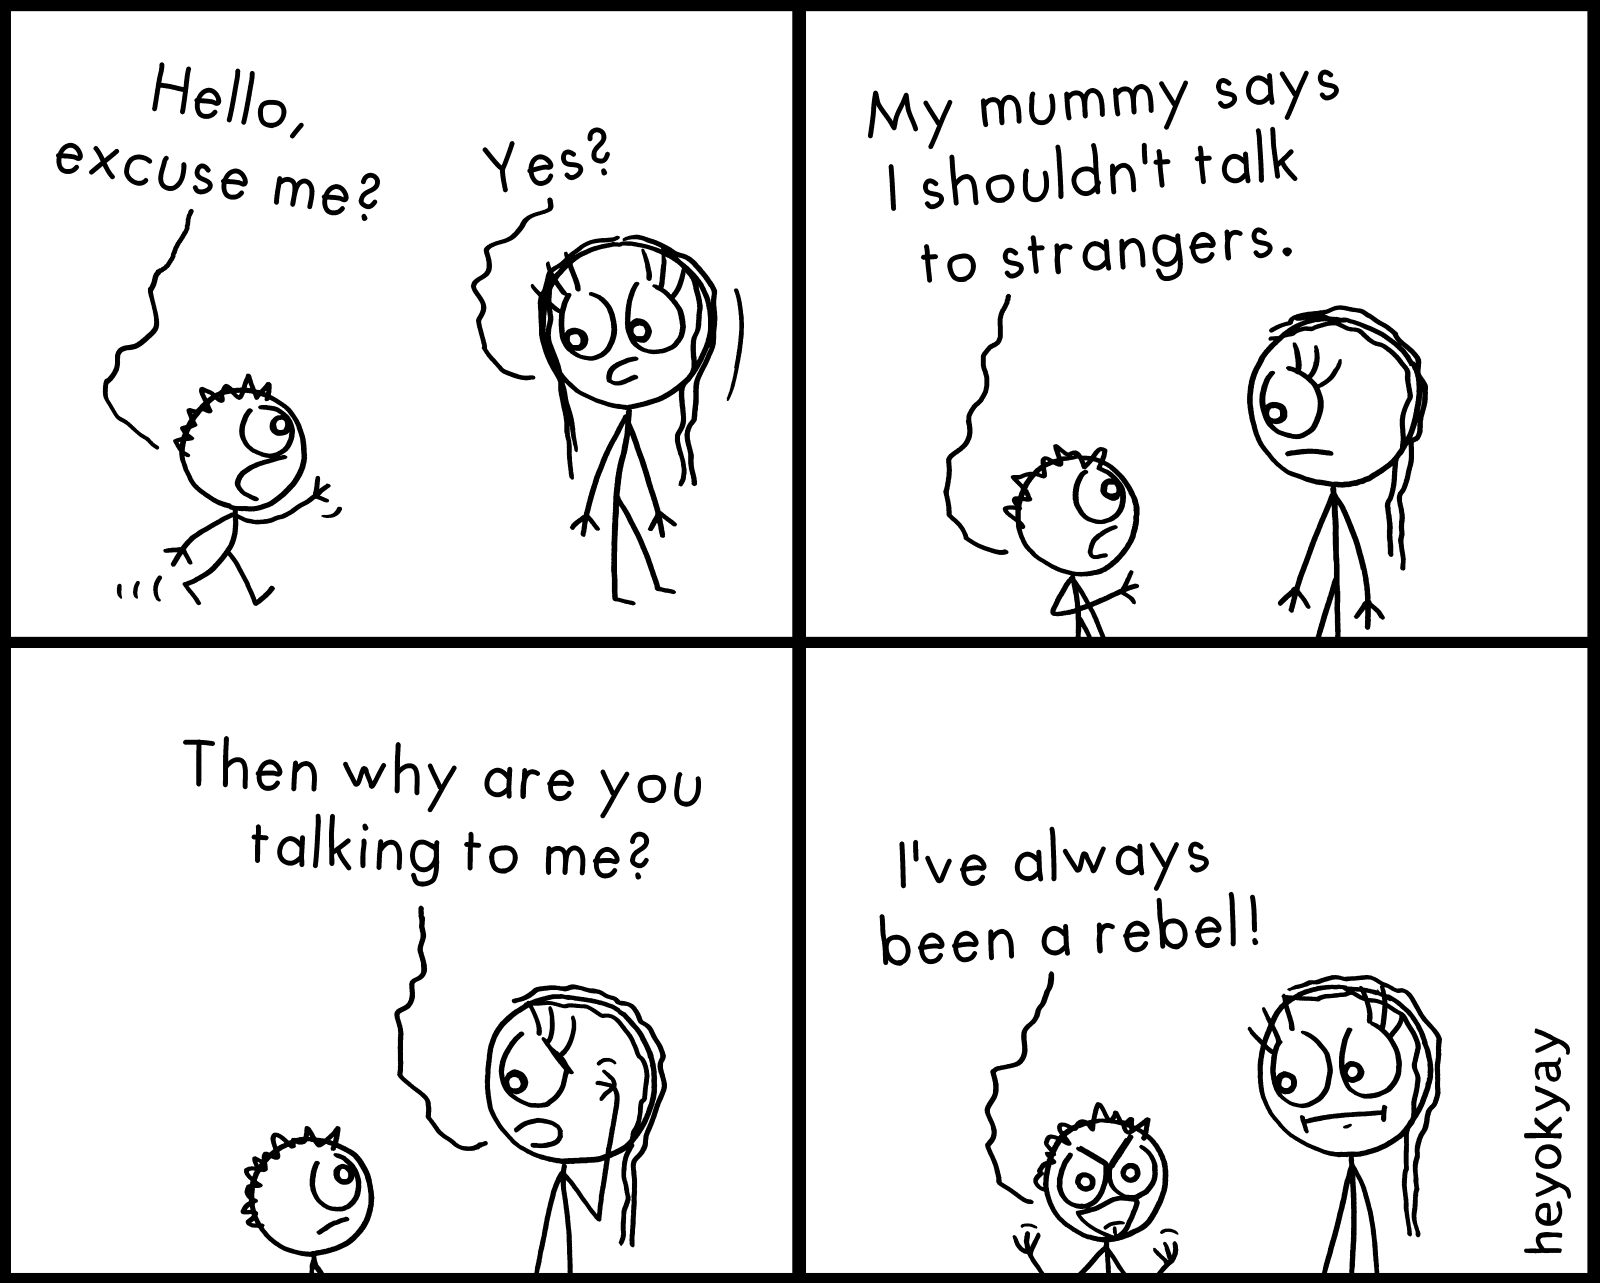 Hello, excuse me? Yes? My mummy says I shouldn't talk to strangers. Then why are you talking to me? I've always been a rebel! Excuse Me heyokyay comic